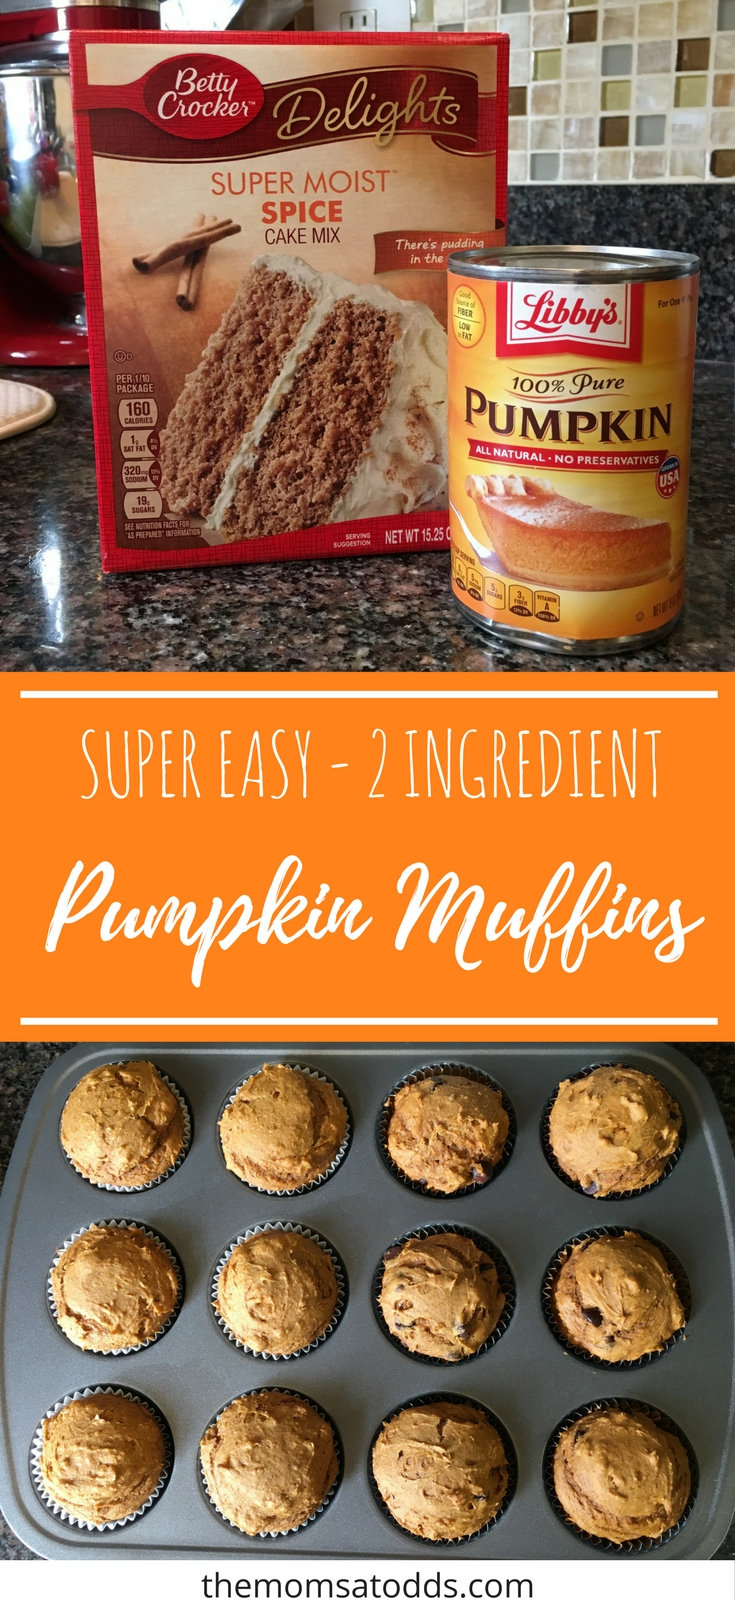 SUPER easy (& yummy!) pumpkin muffins that only need 2 ingredients